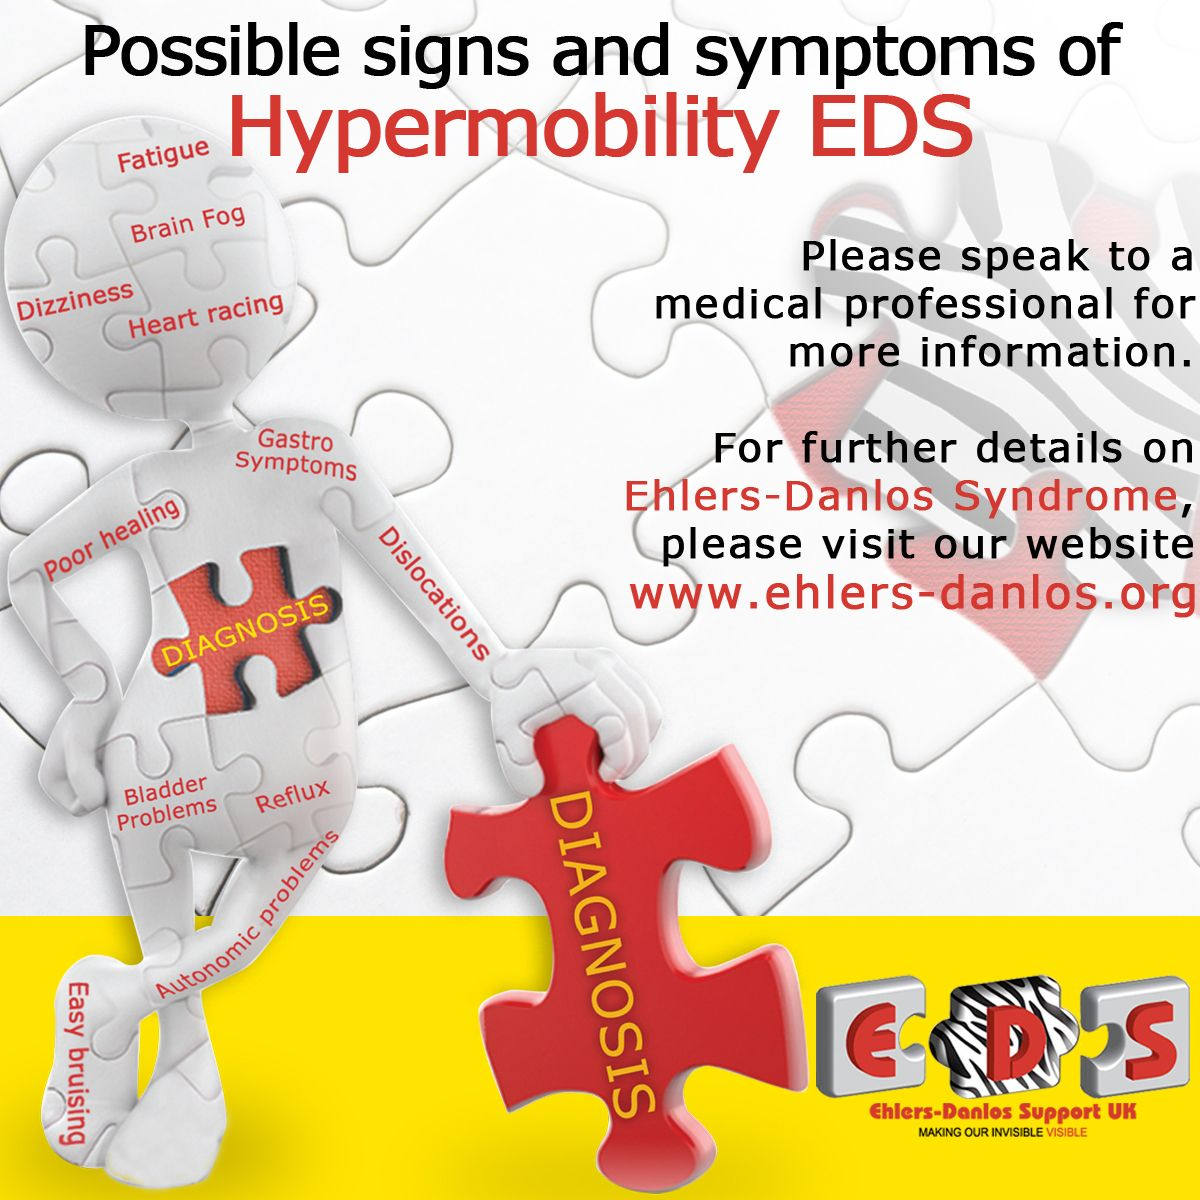 Signs and symptoms of Hypermobility EDS (EDSHT)